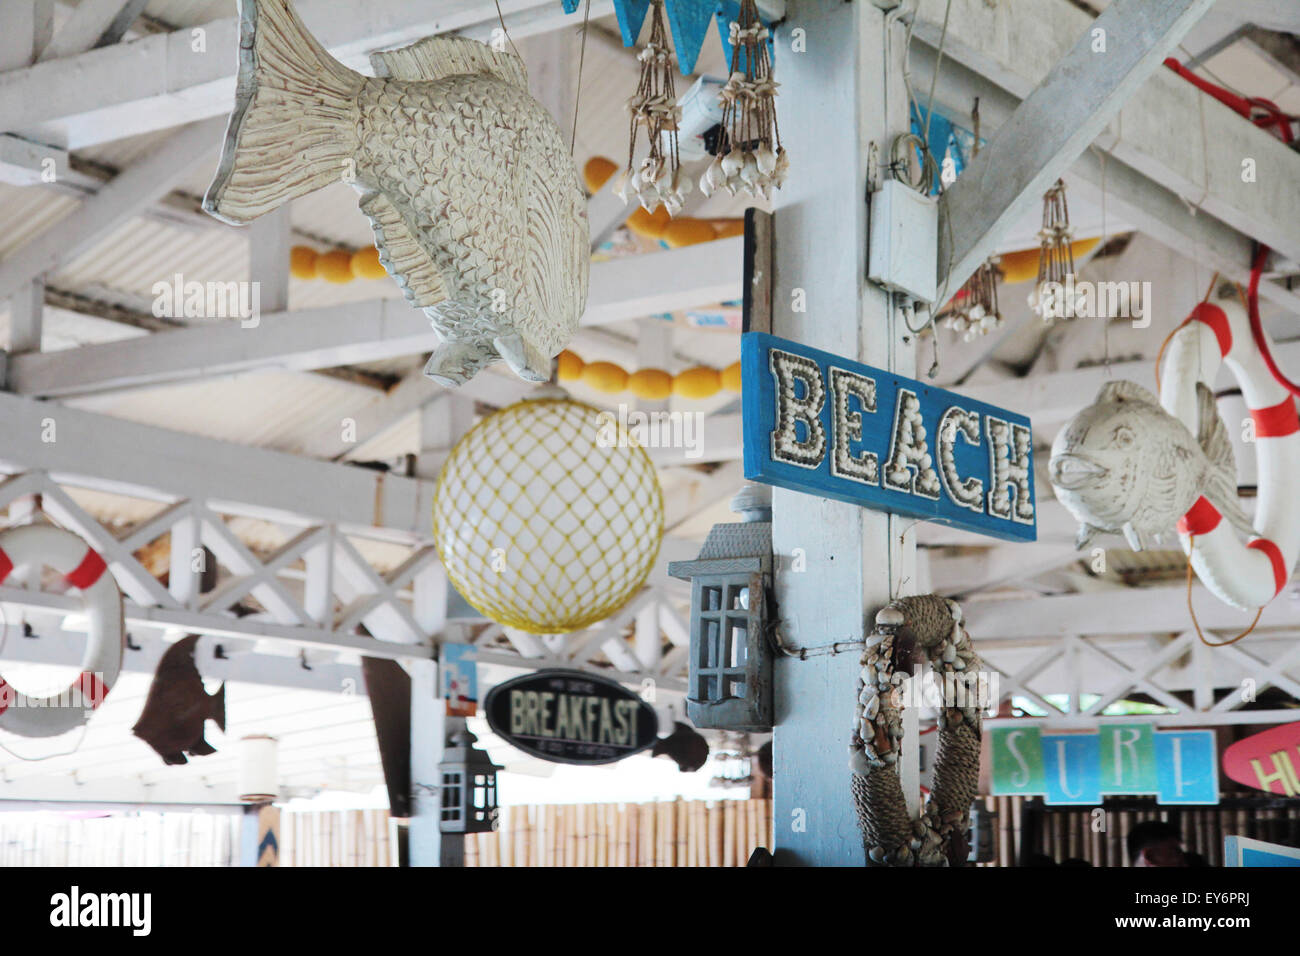 Beach themed signage and decor decorate this seaside